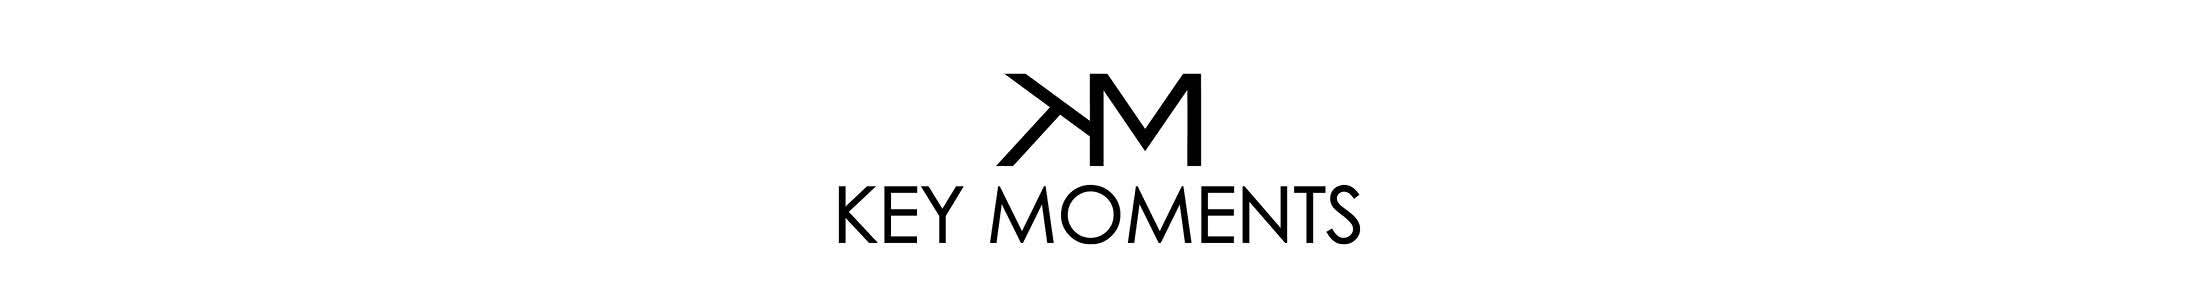 Key Moments Header